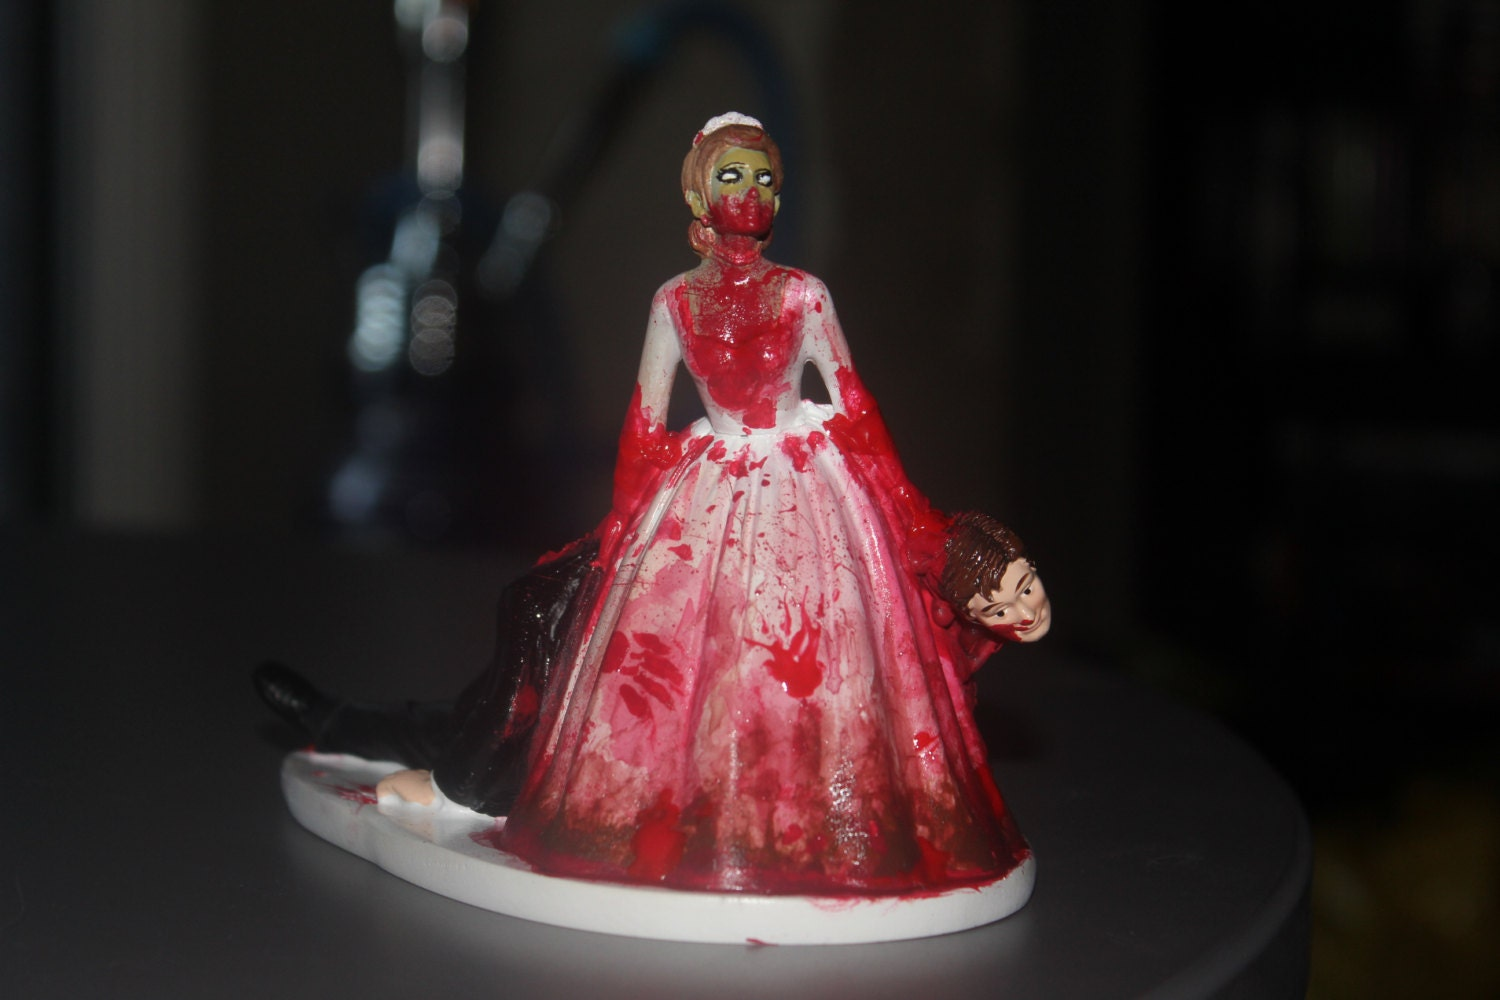 Zombie Wedding Gifts: Zombie Bride And Groom Cake Topper